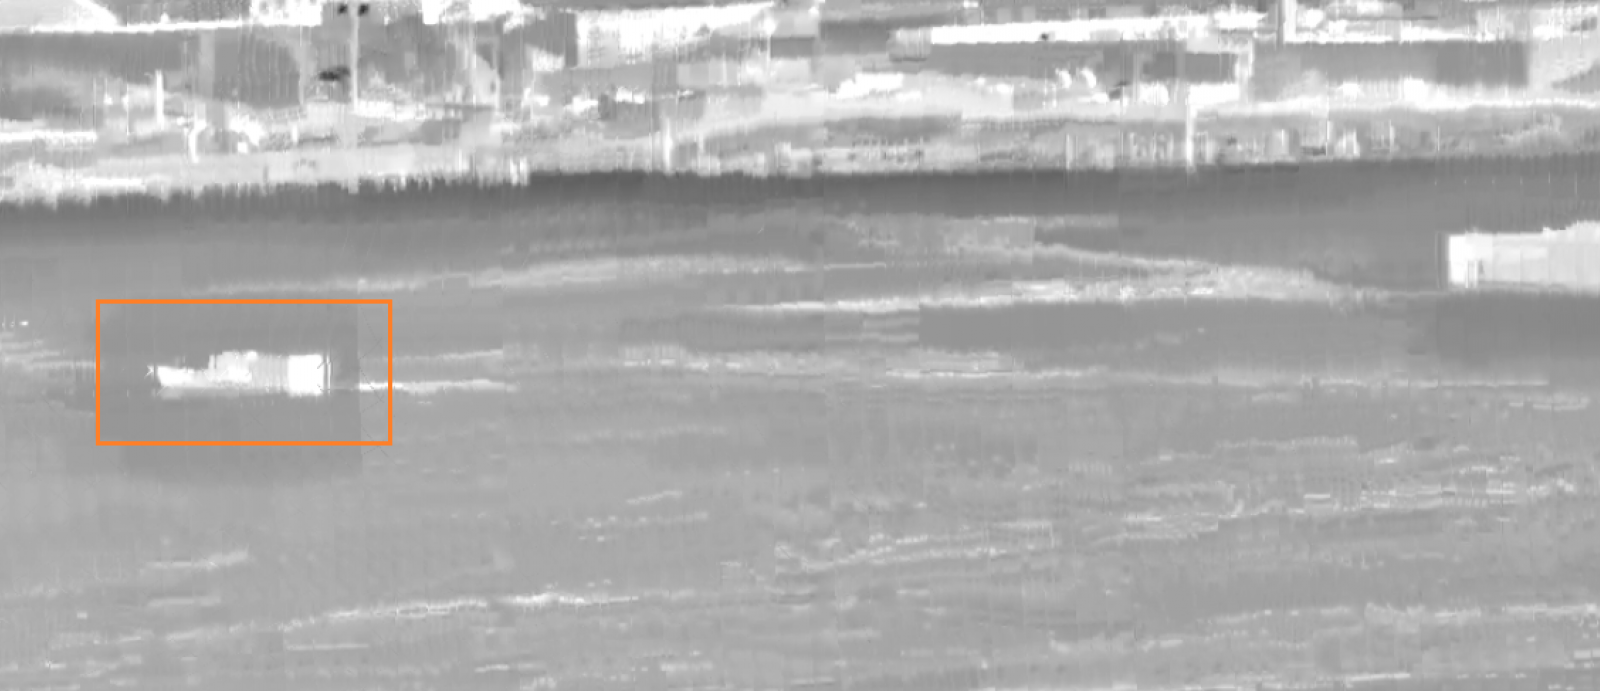 A grey-scale surveillance image of a shoreline, with a boat in the water outlined by an orange box.